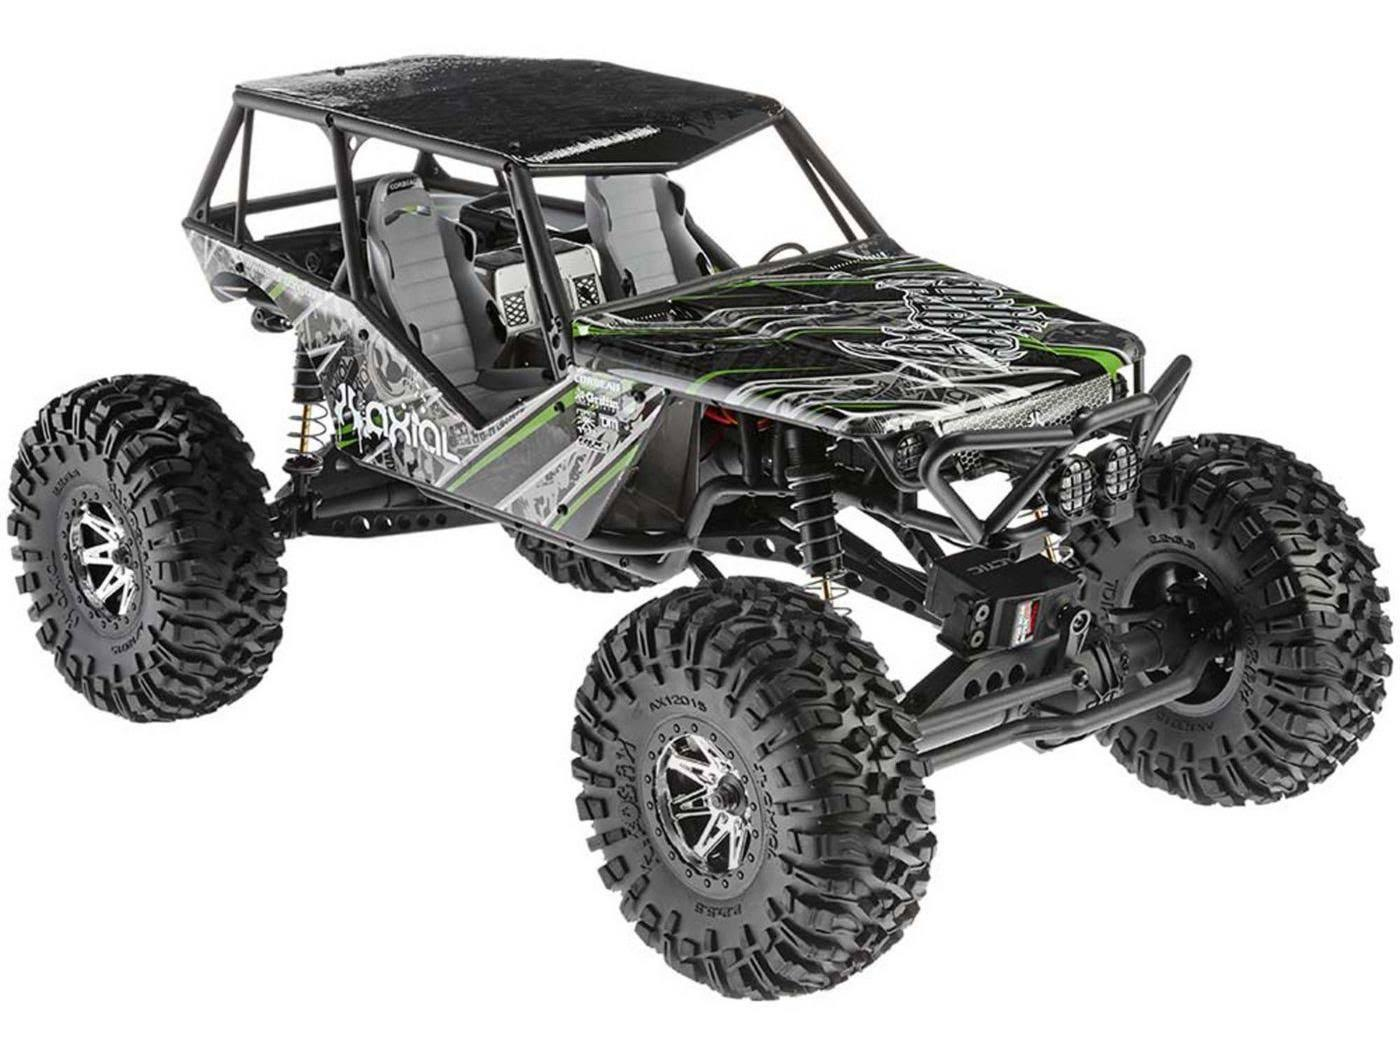 Axial RacingWraith Rock Racer 4WD Ready-to-Run Model Kit - 1/10 Scale